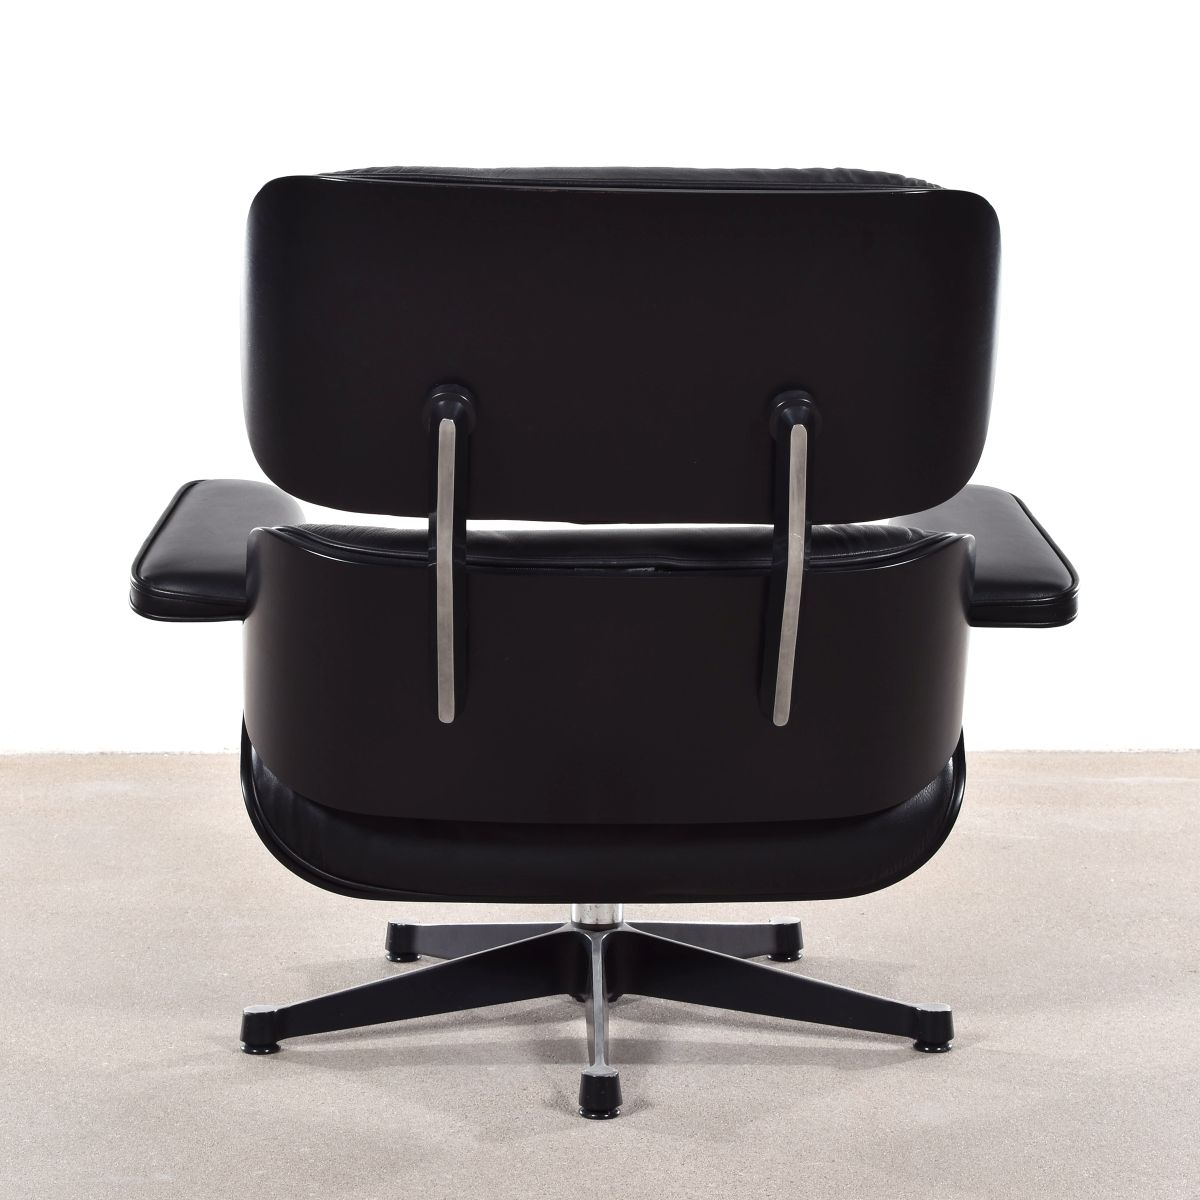 German lounge chair by charles ray eames for vitra 1988 for Eames chair nachbau deutschland